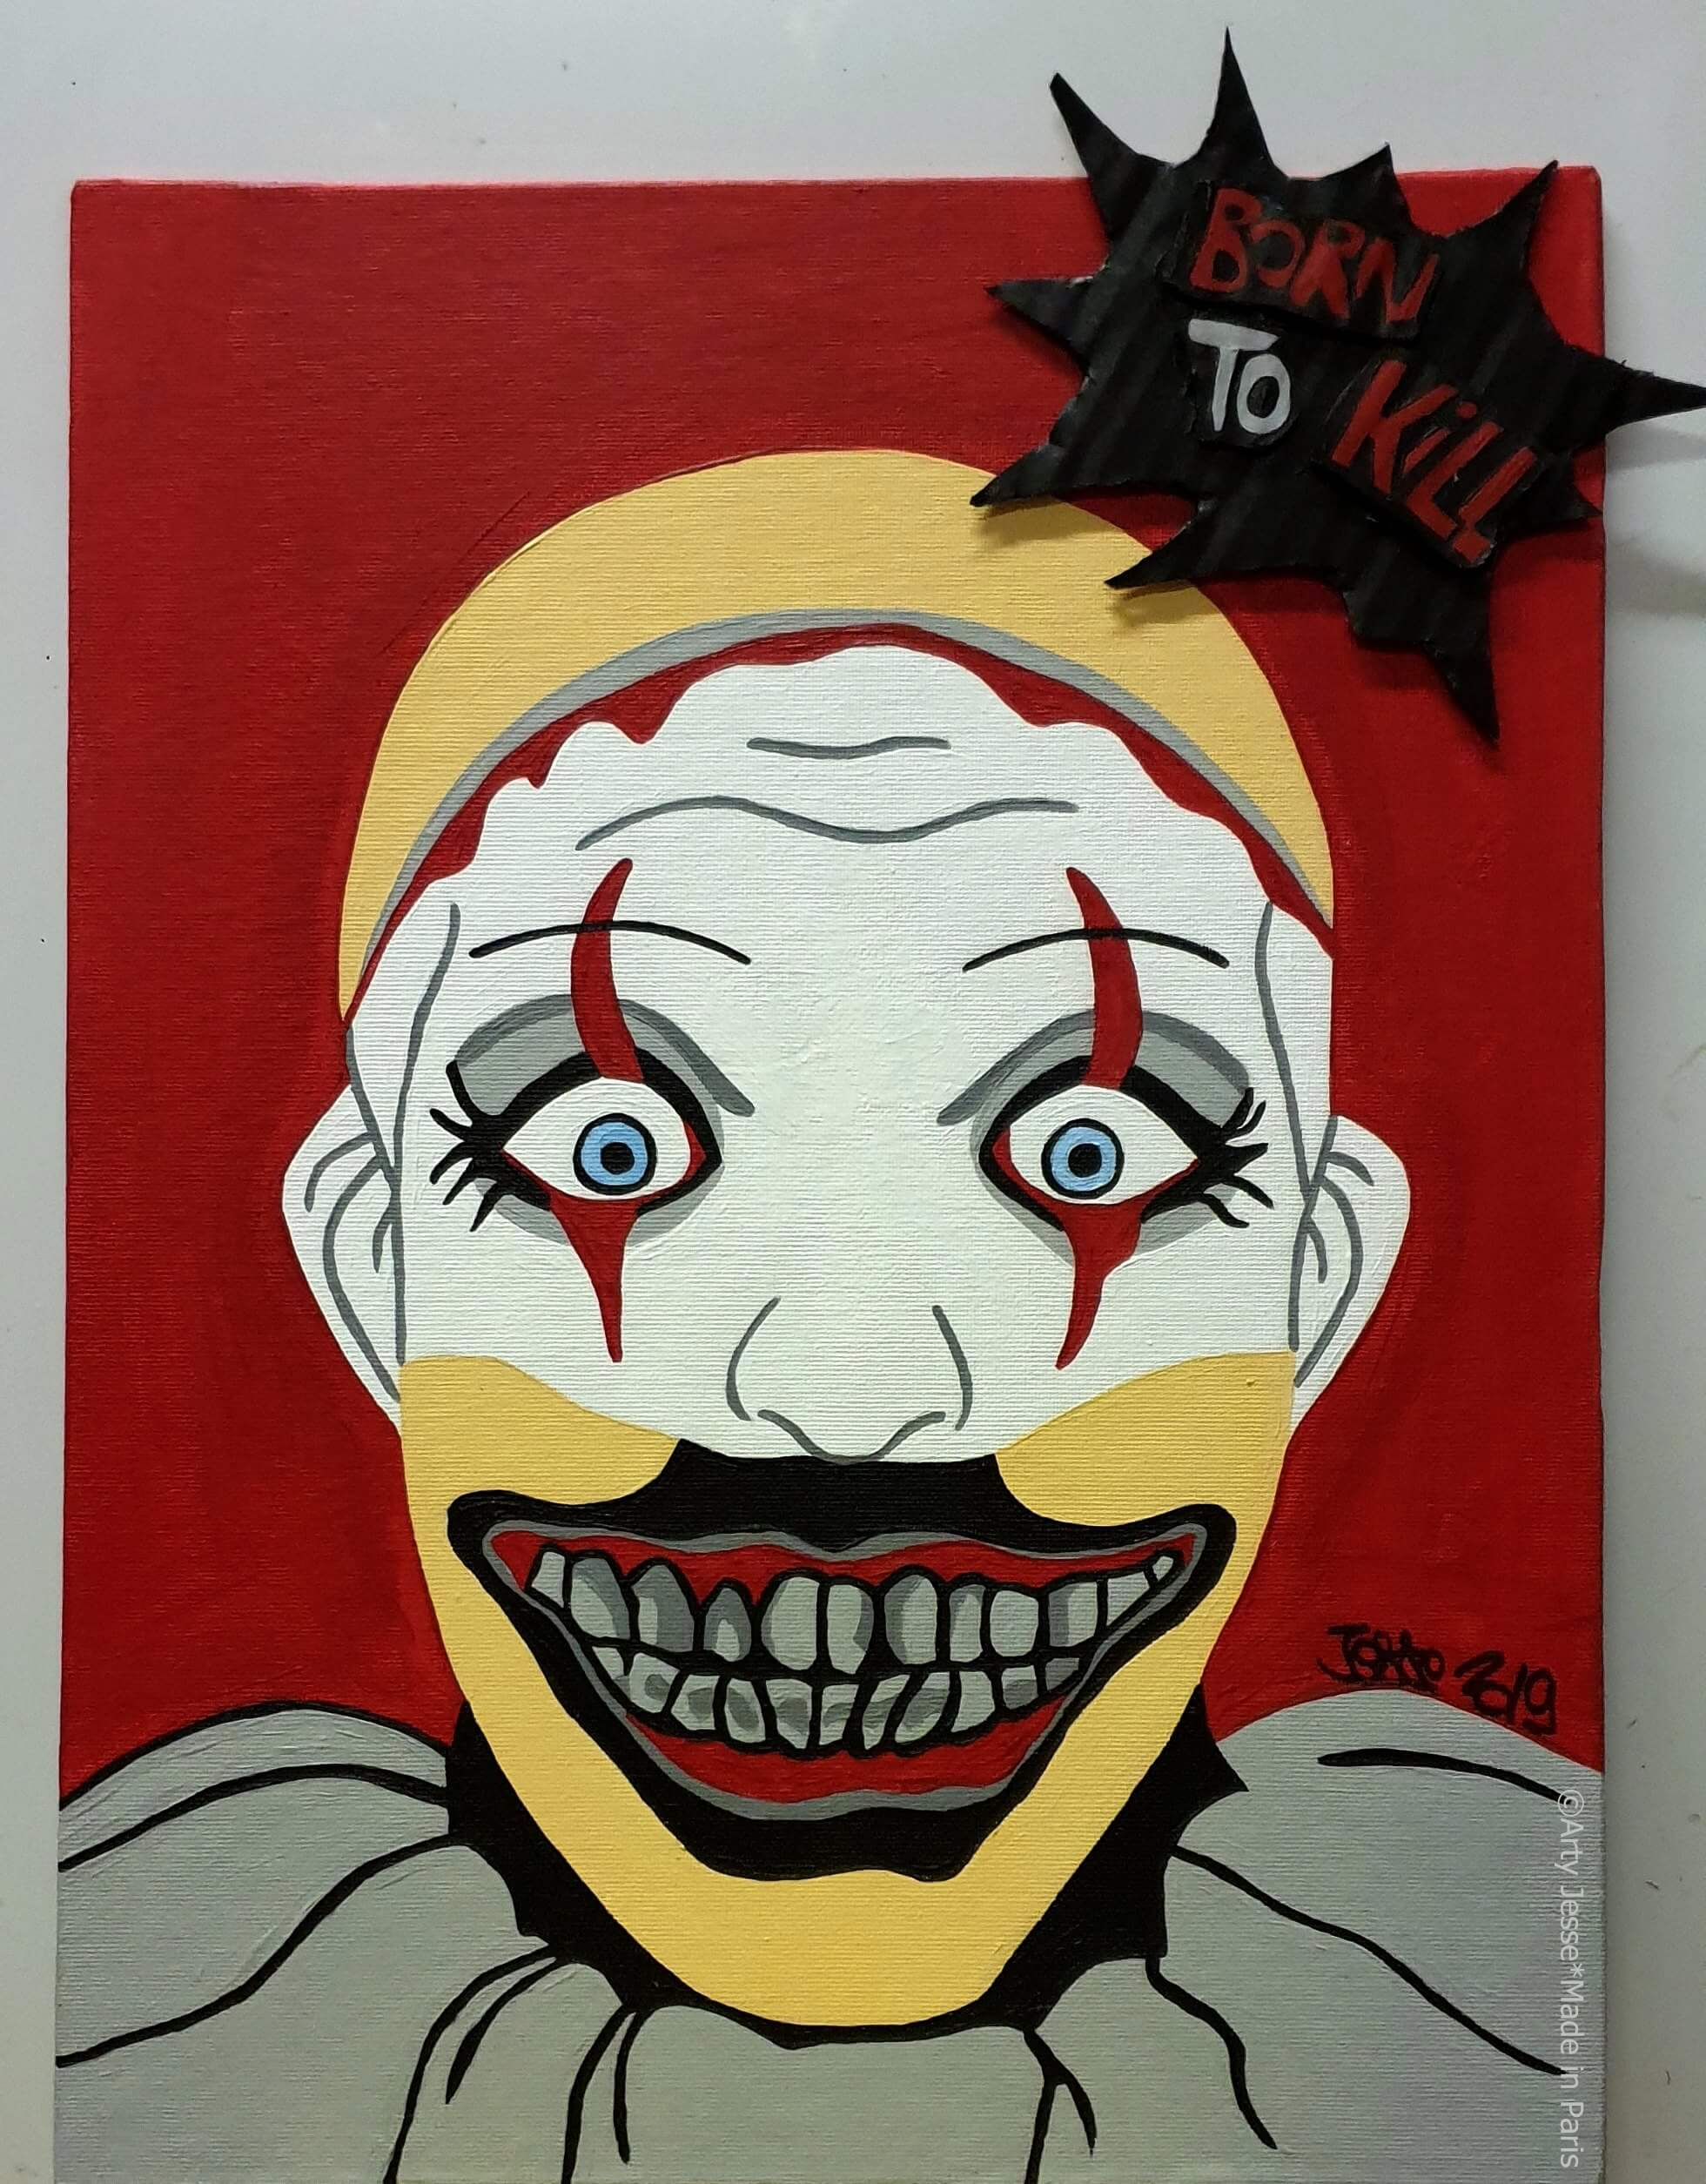 artiste peintre paris, circus art, clown, killer clown, clown tueur art